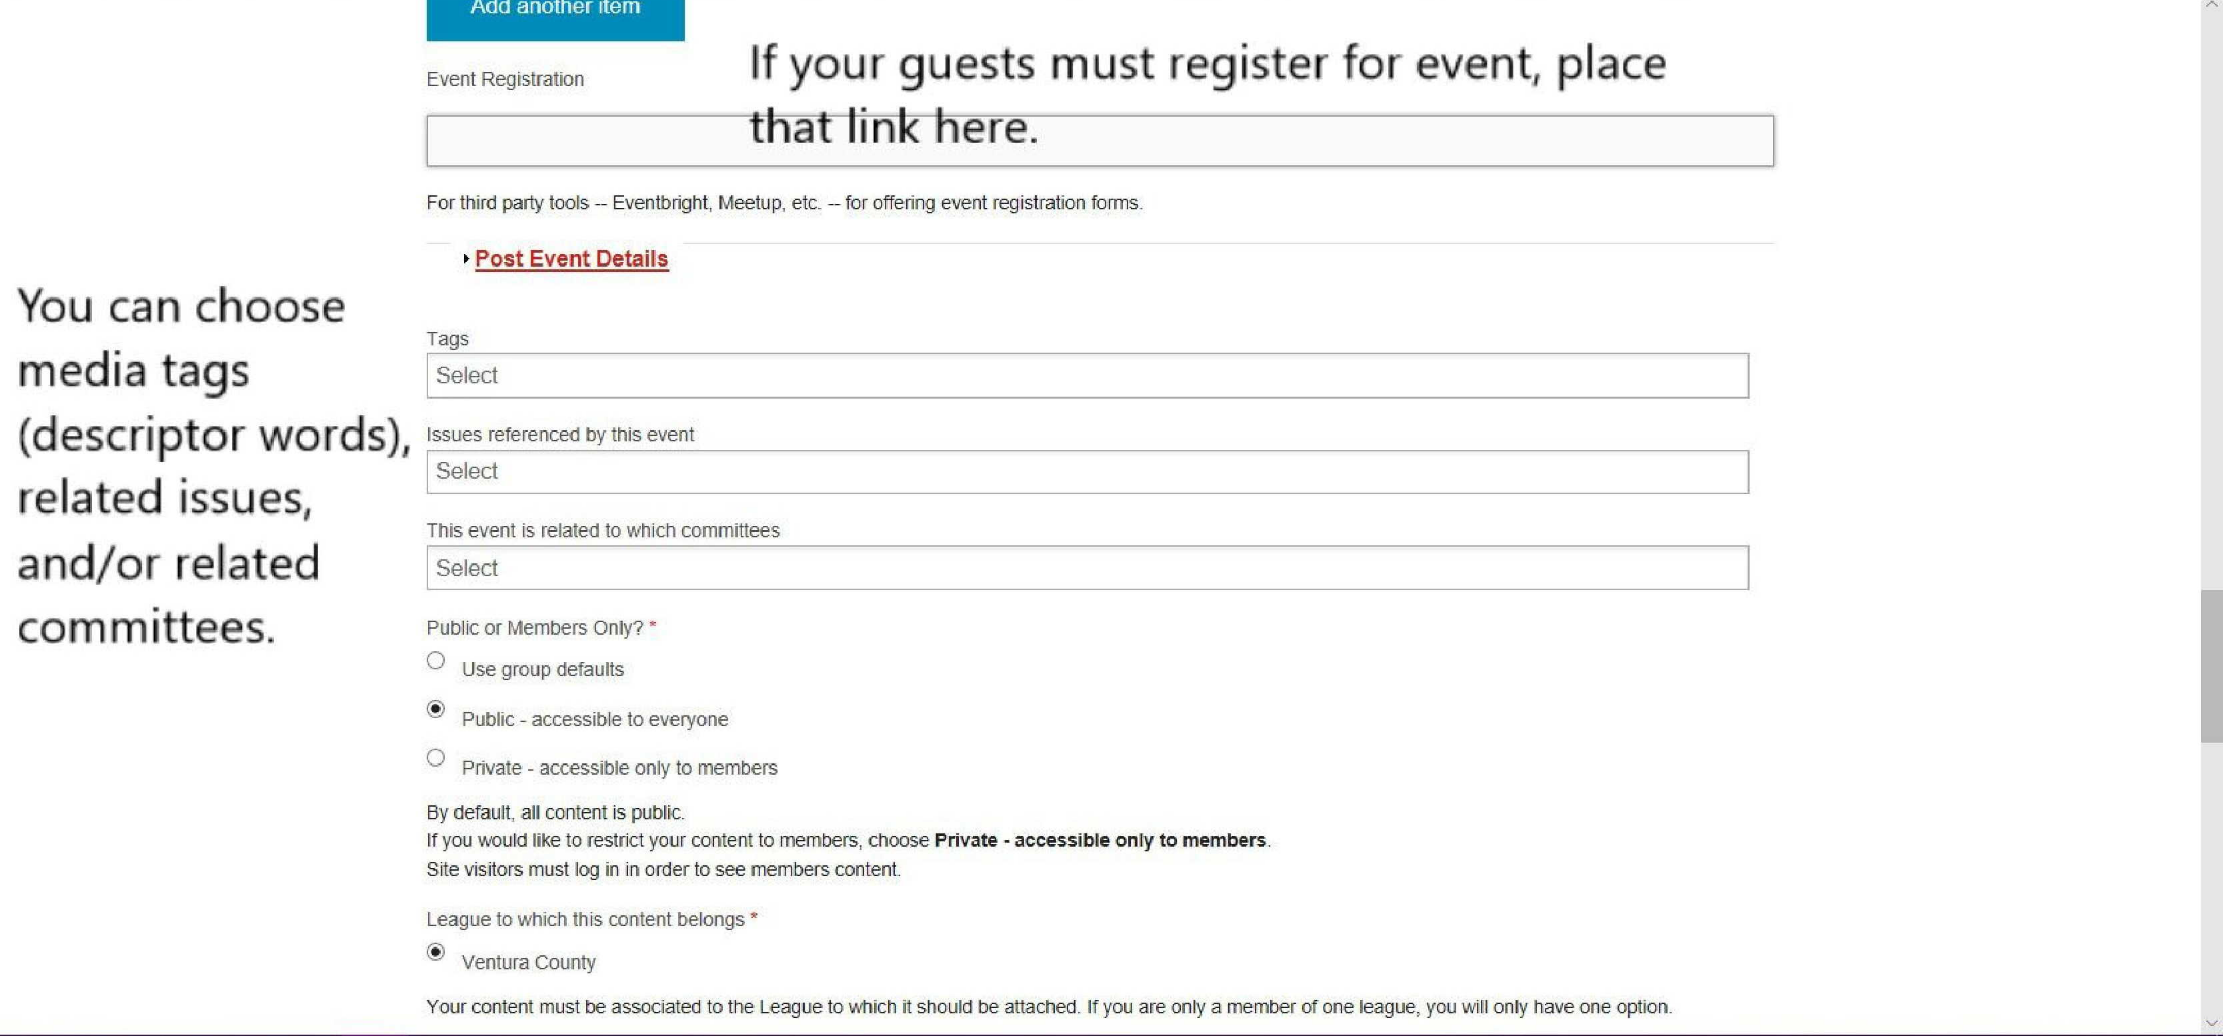 Add Event - add registration link, media tags, related issues and/or committees